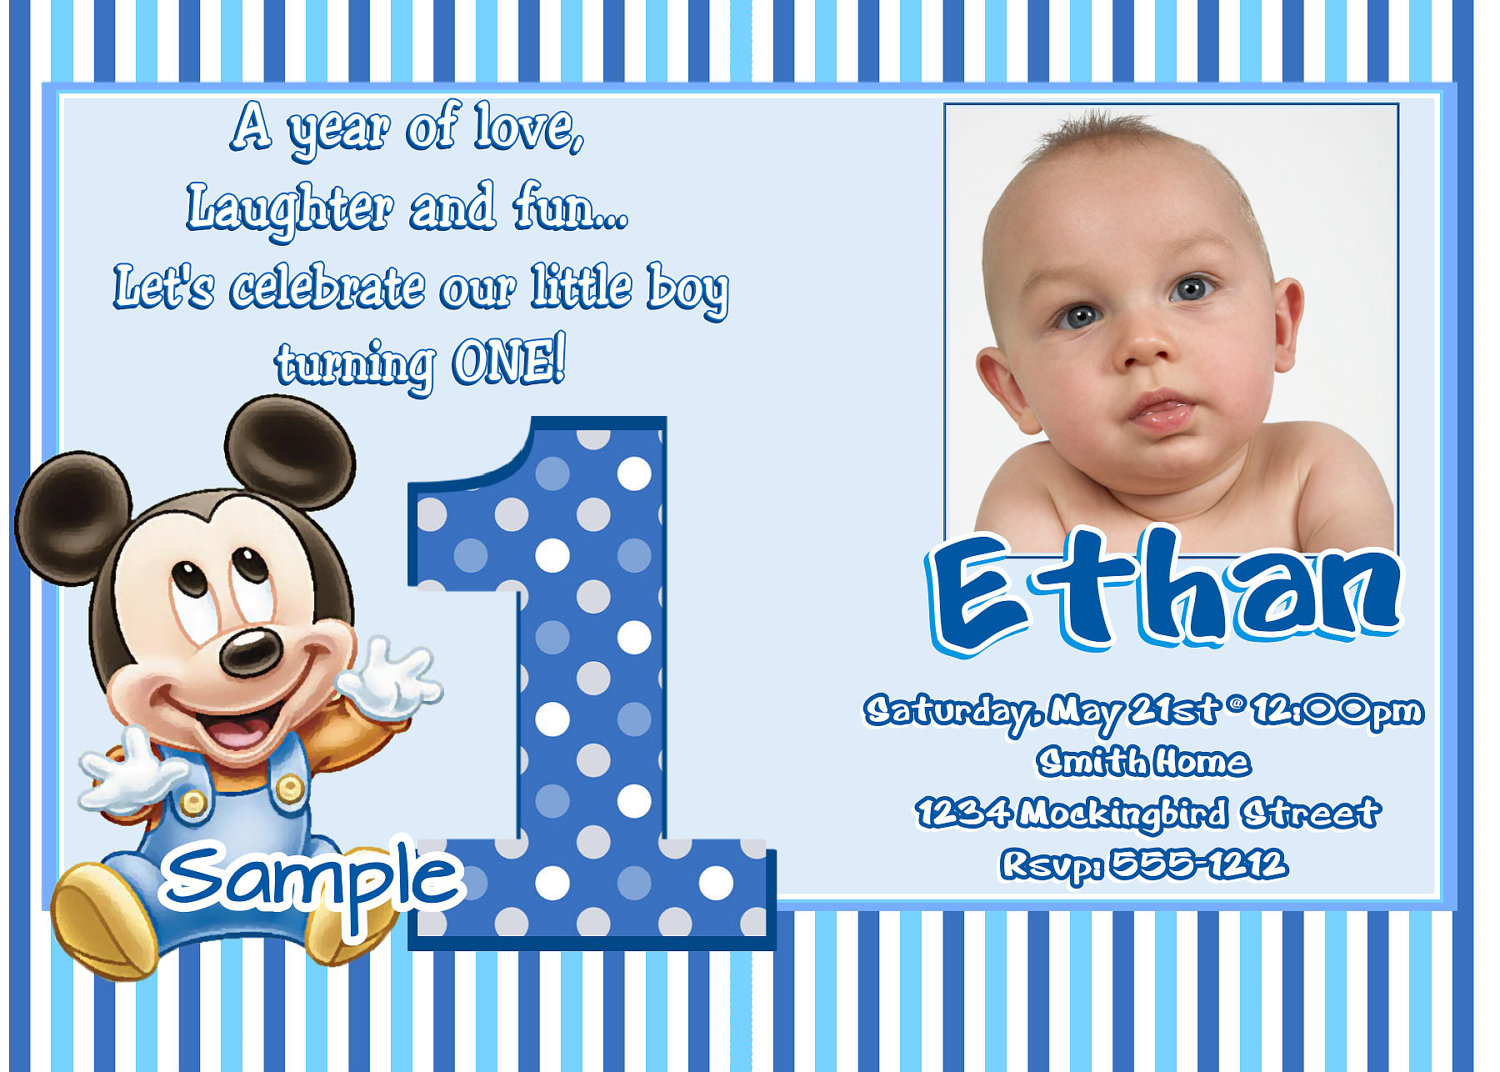 baby birthday invitation template ; create-easy-first-birthday-invitation-wording-free-templates_free-st-birthday-invitation-maker-sampl-on-birthday-invitation-boys-party-turquoise-grey-navy